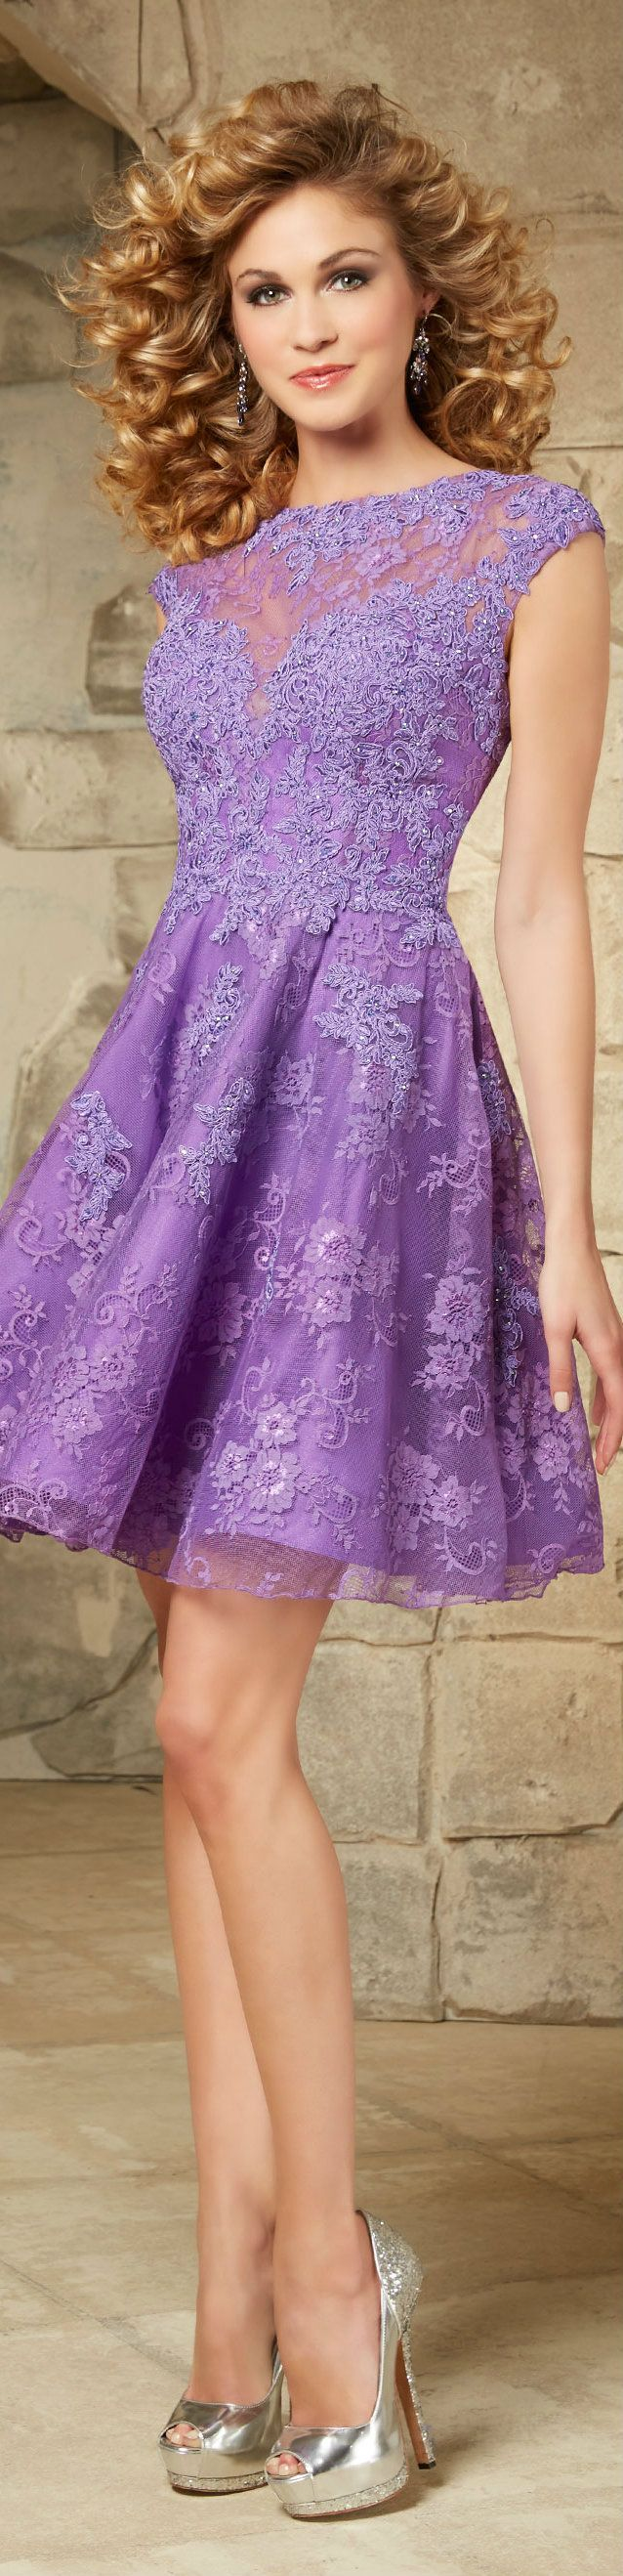 Party dress - TULLE WITH SATIN WAISTBAND AND BEADING | gorgeous ...